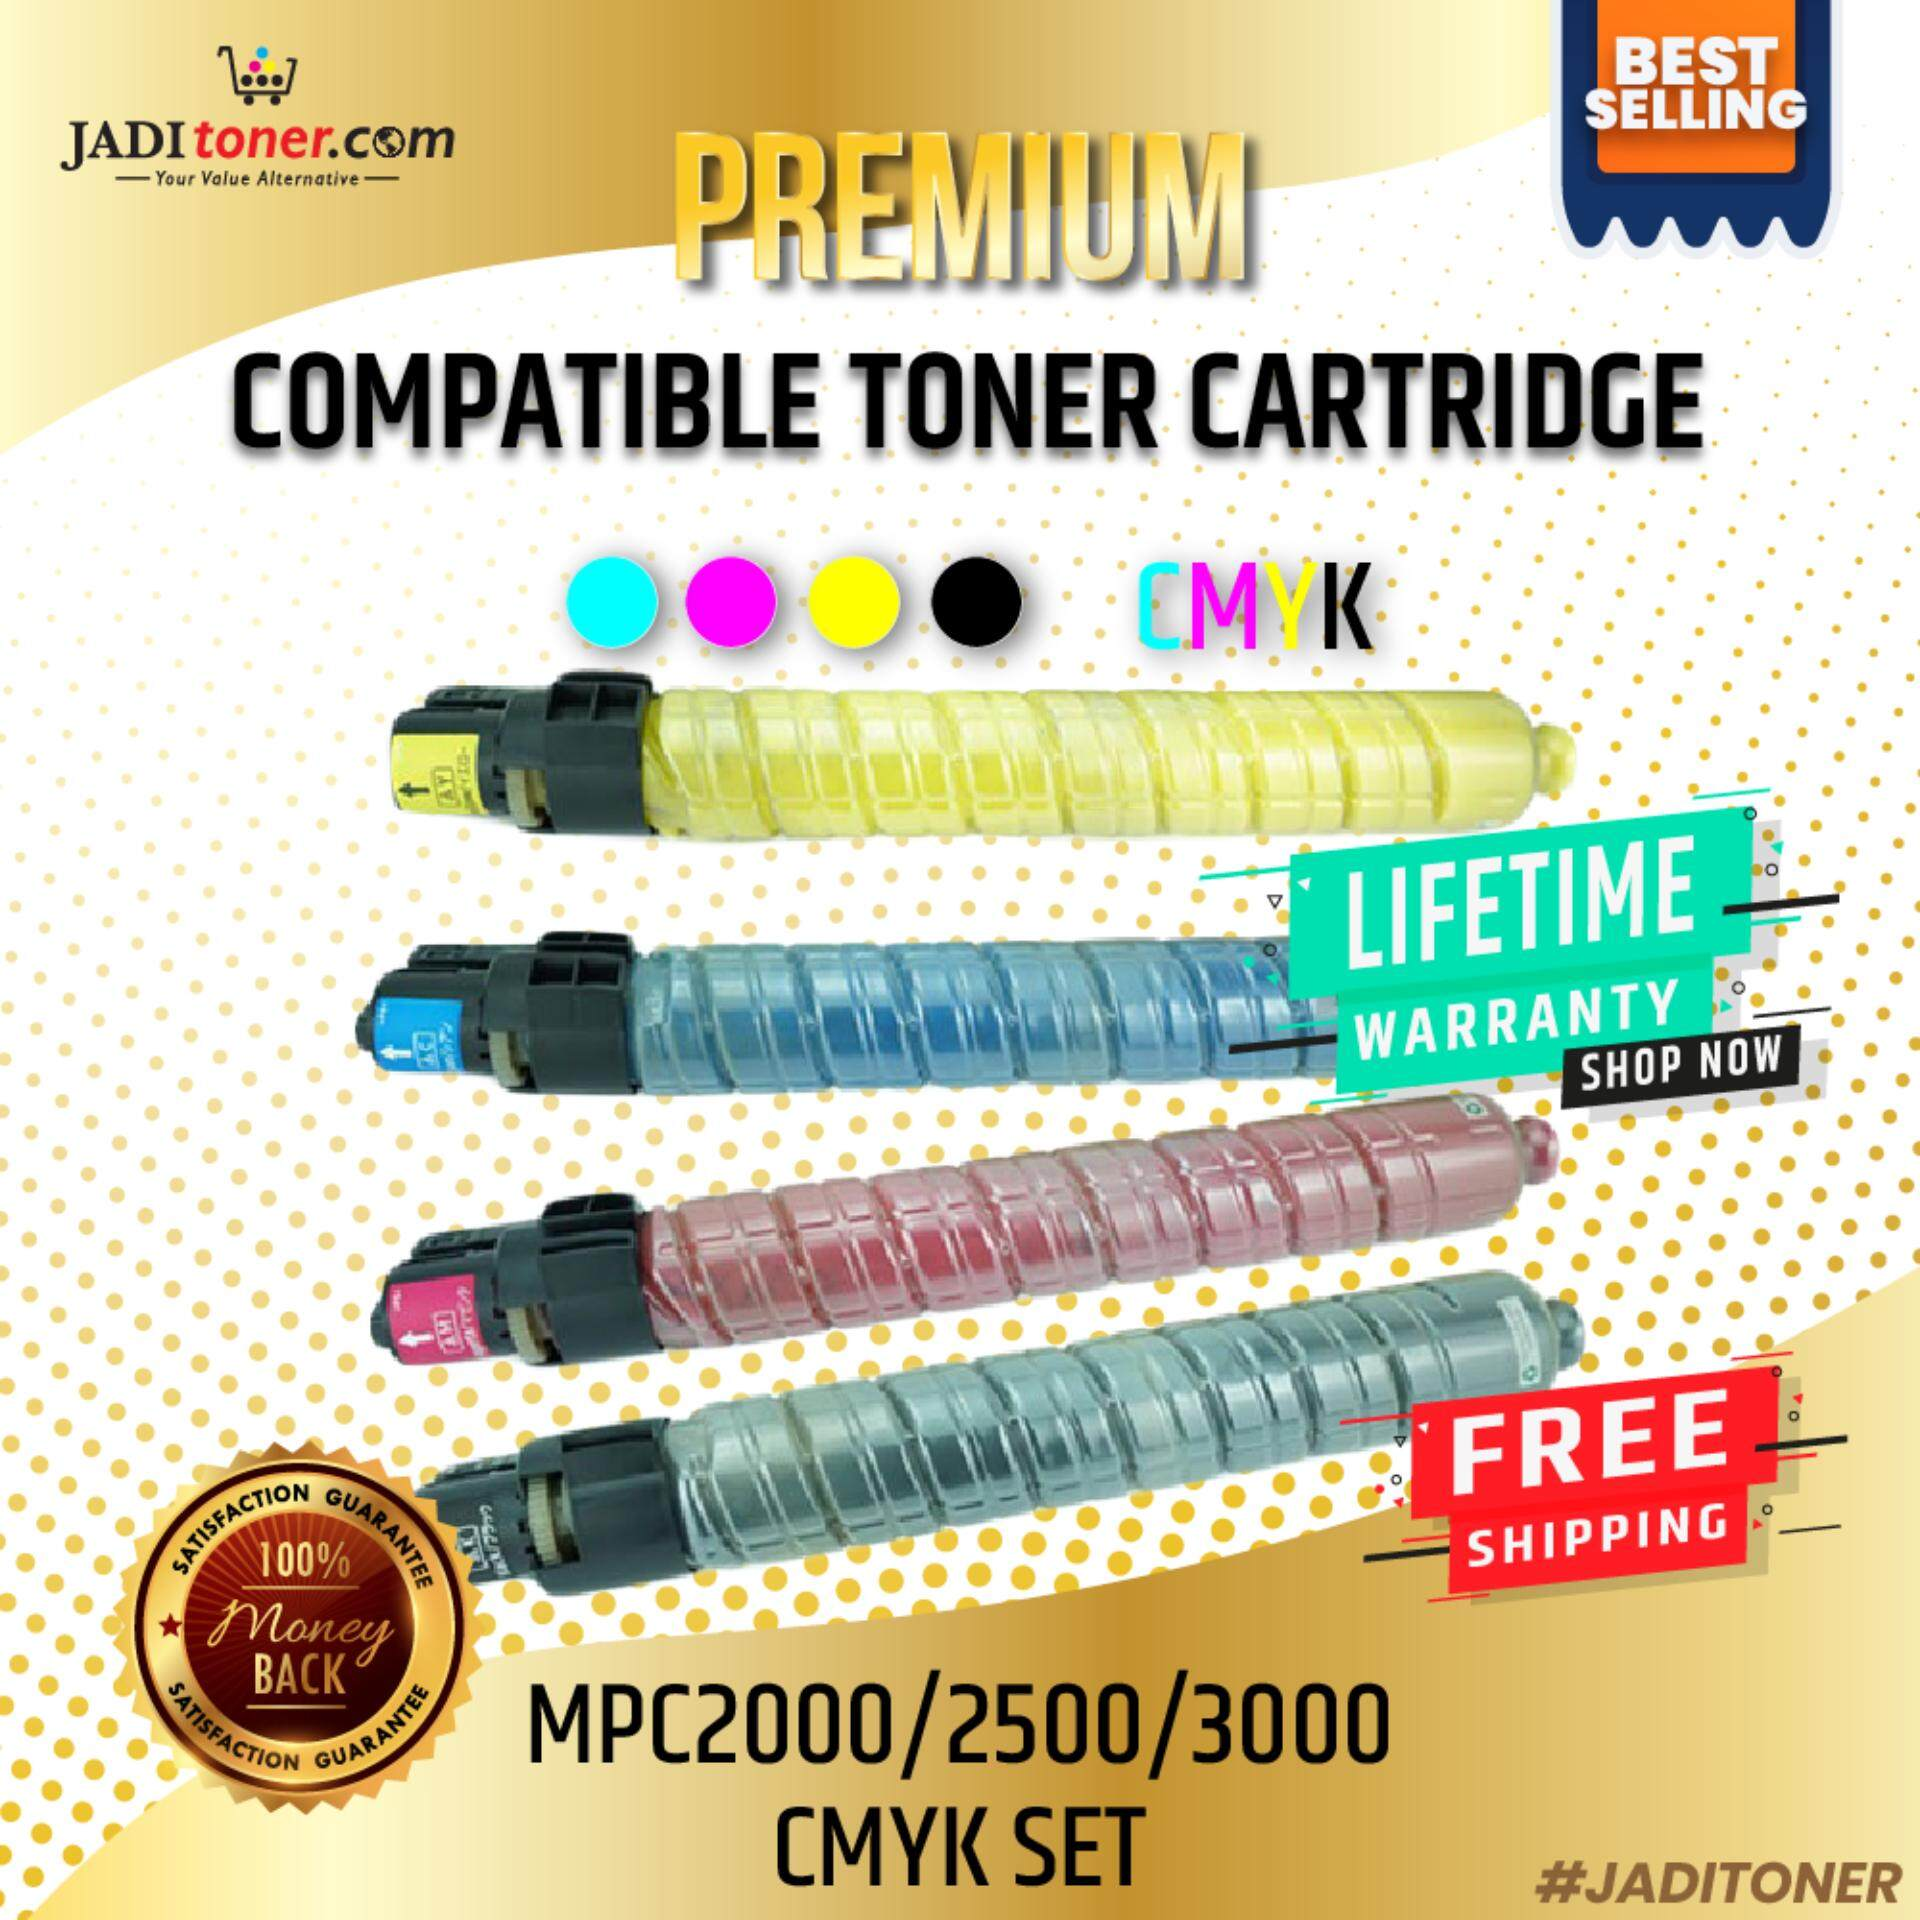 Compatible Ricoh Toner Cartridge CMYK Set (Cyan, Magenta, Yellow & Black) For Use in Ricoh MPC2000 / MPC2500 / MPC3000 / Ricoh Aficio MP C2000 / Ricoh Aficio MP C2500 / Ricoh Aficio MP C3000